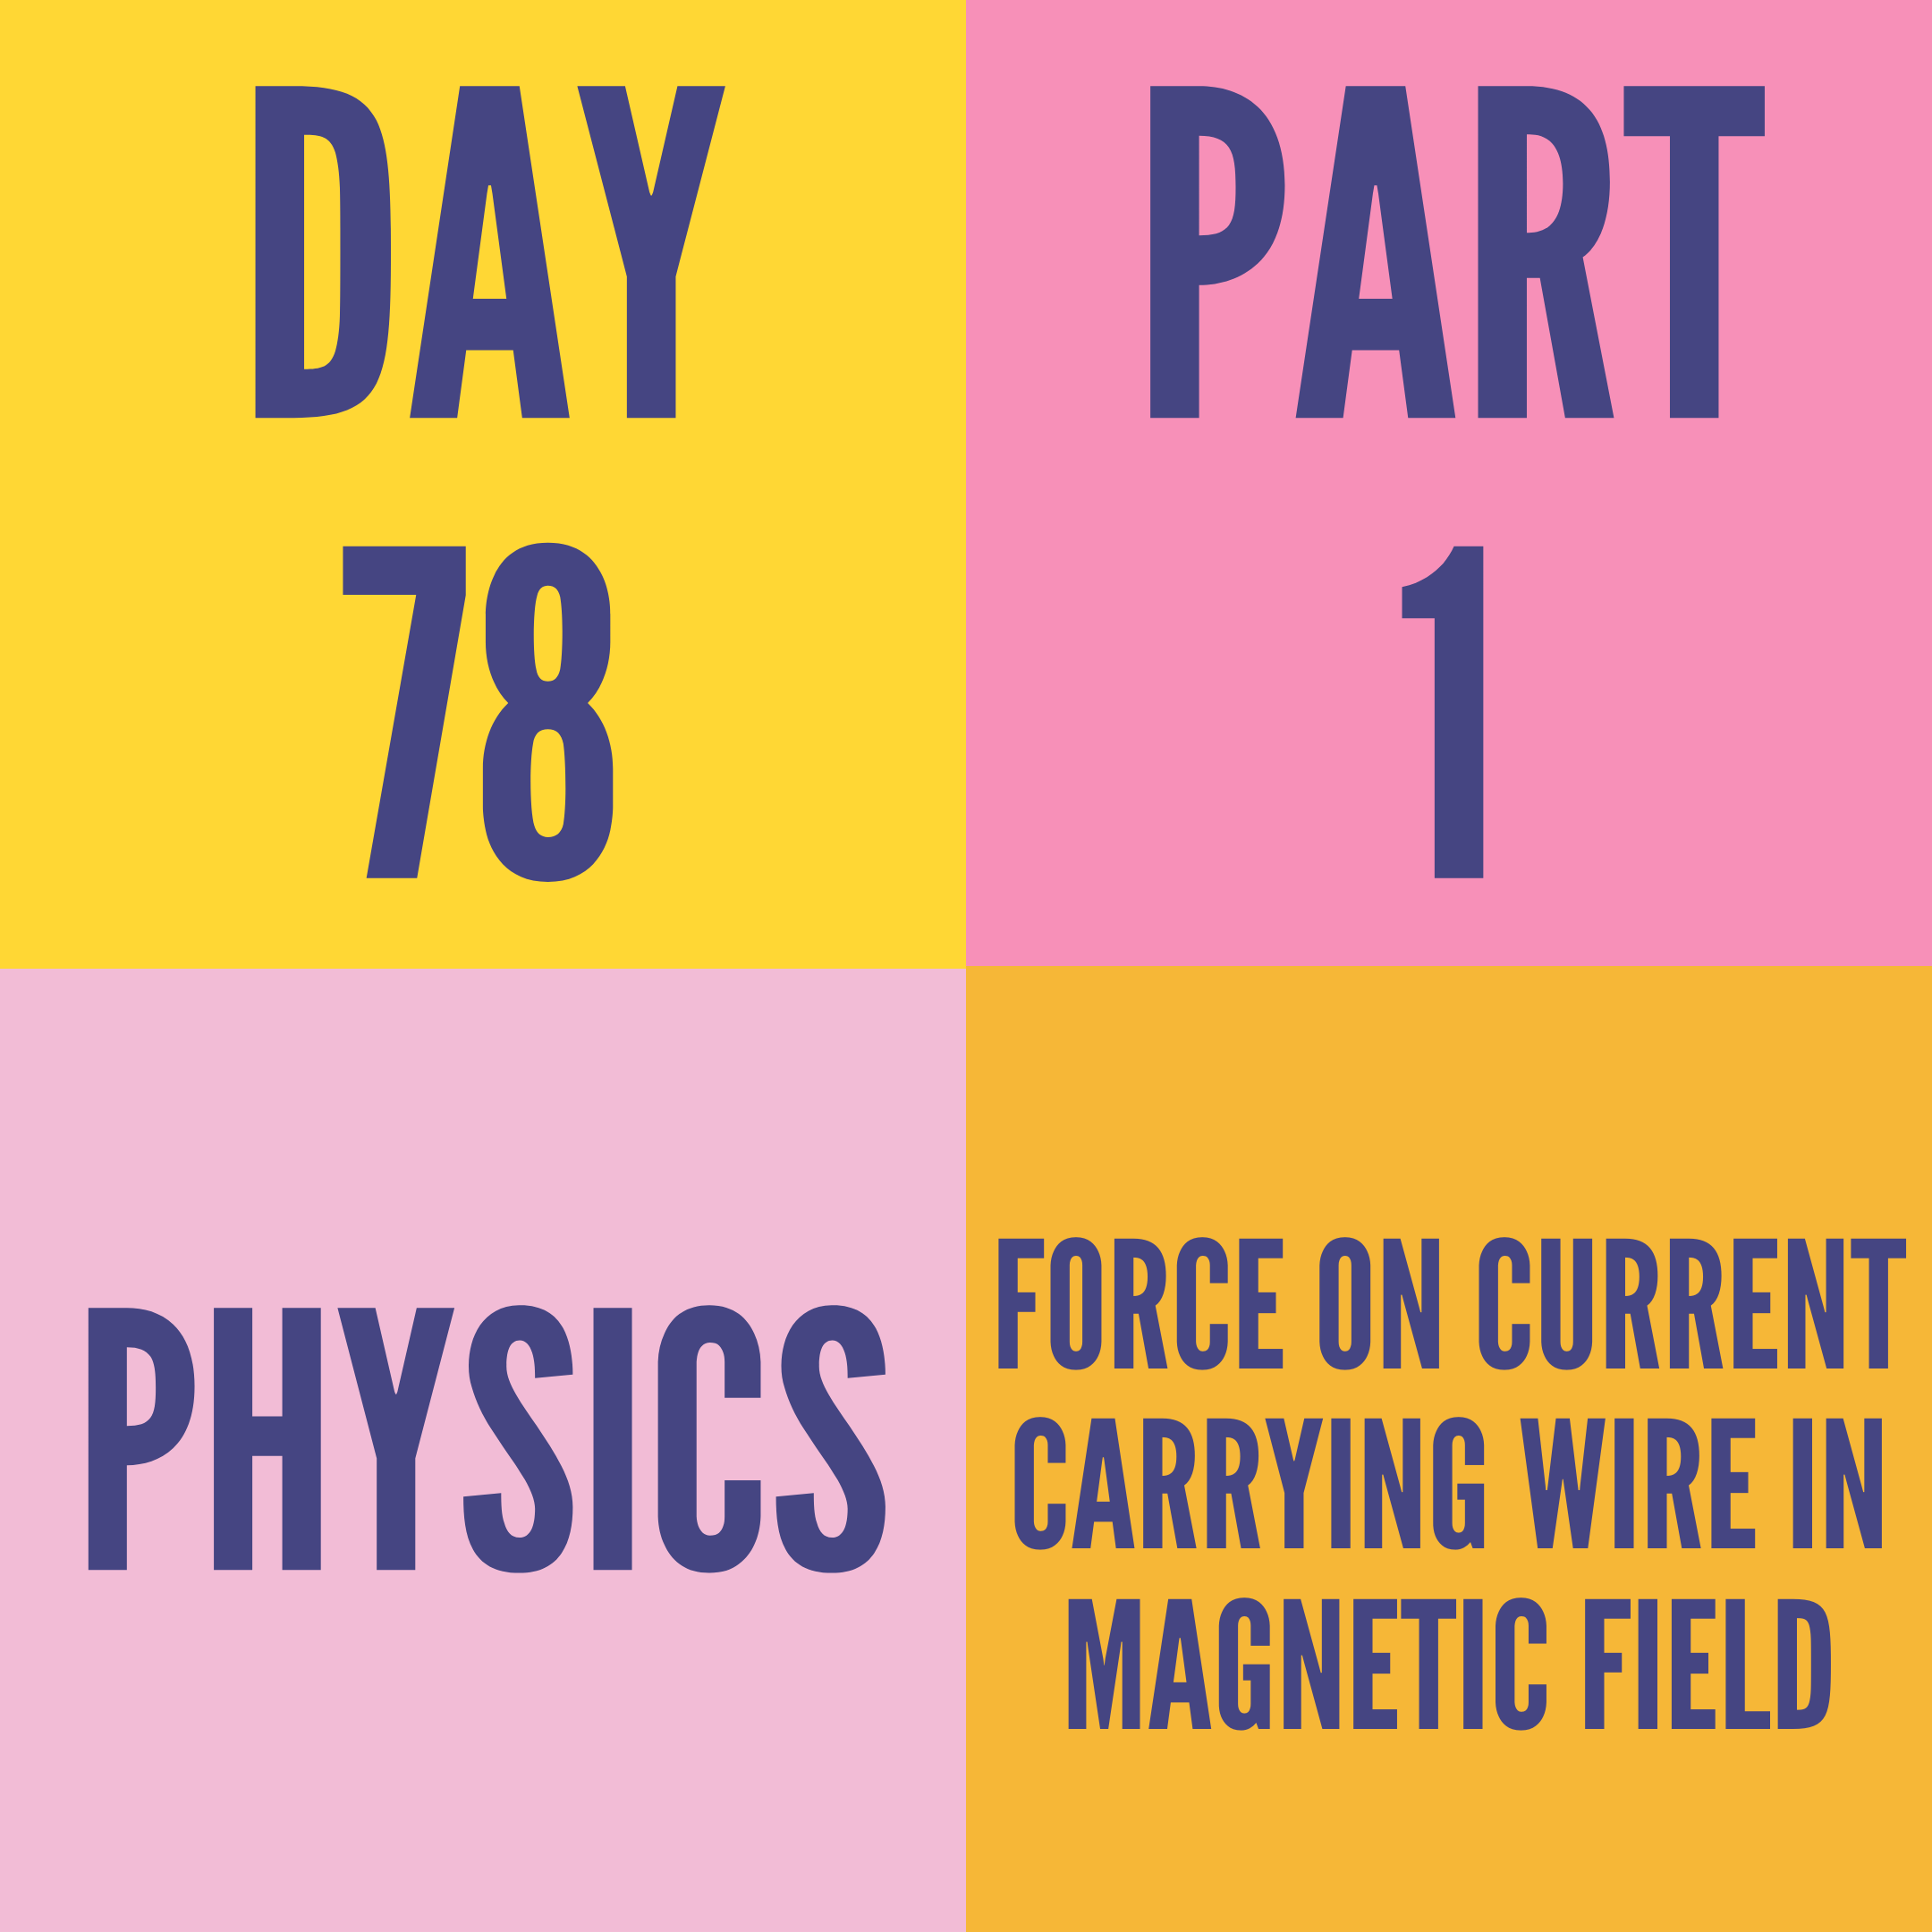 DAY-78 PART-1 FORCE ON CURRENT CARRYING WIRE IN MAGNETIC FIELD